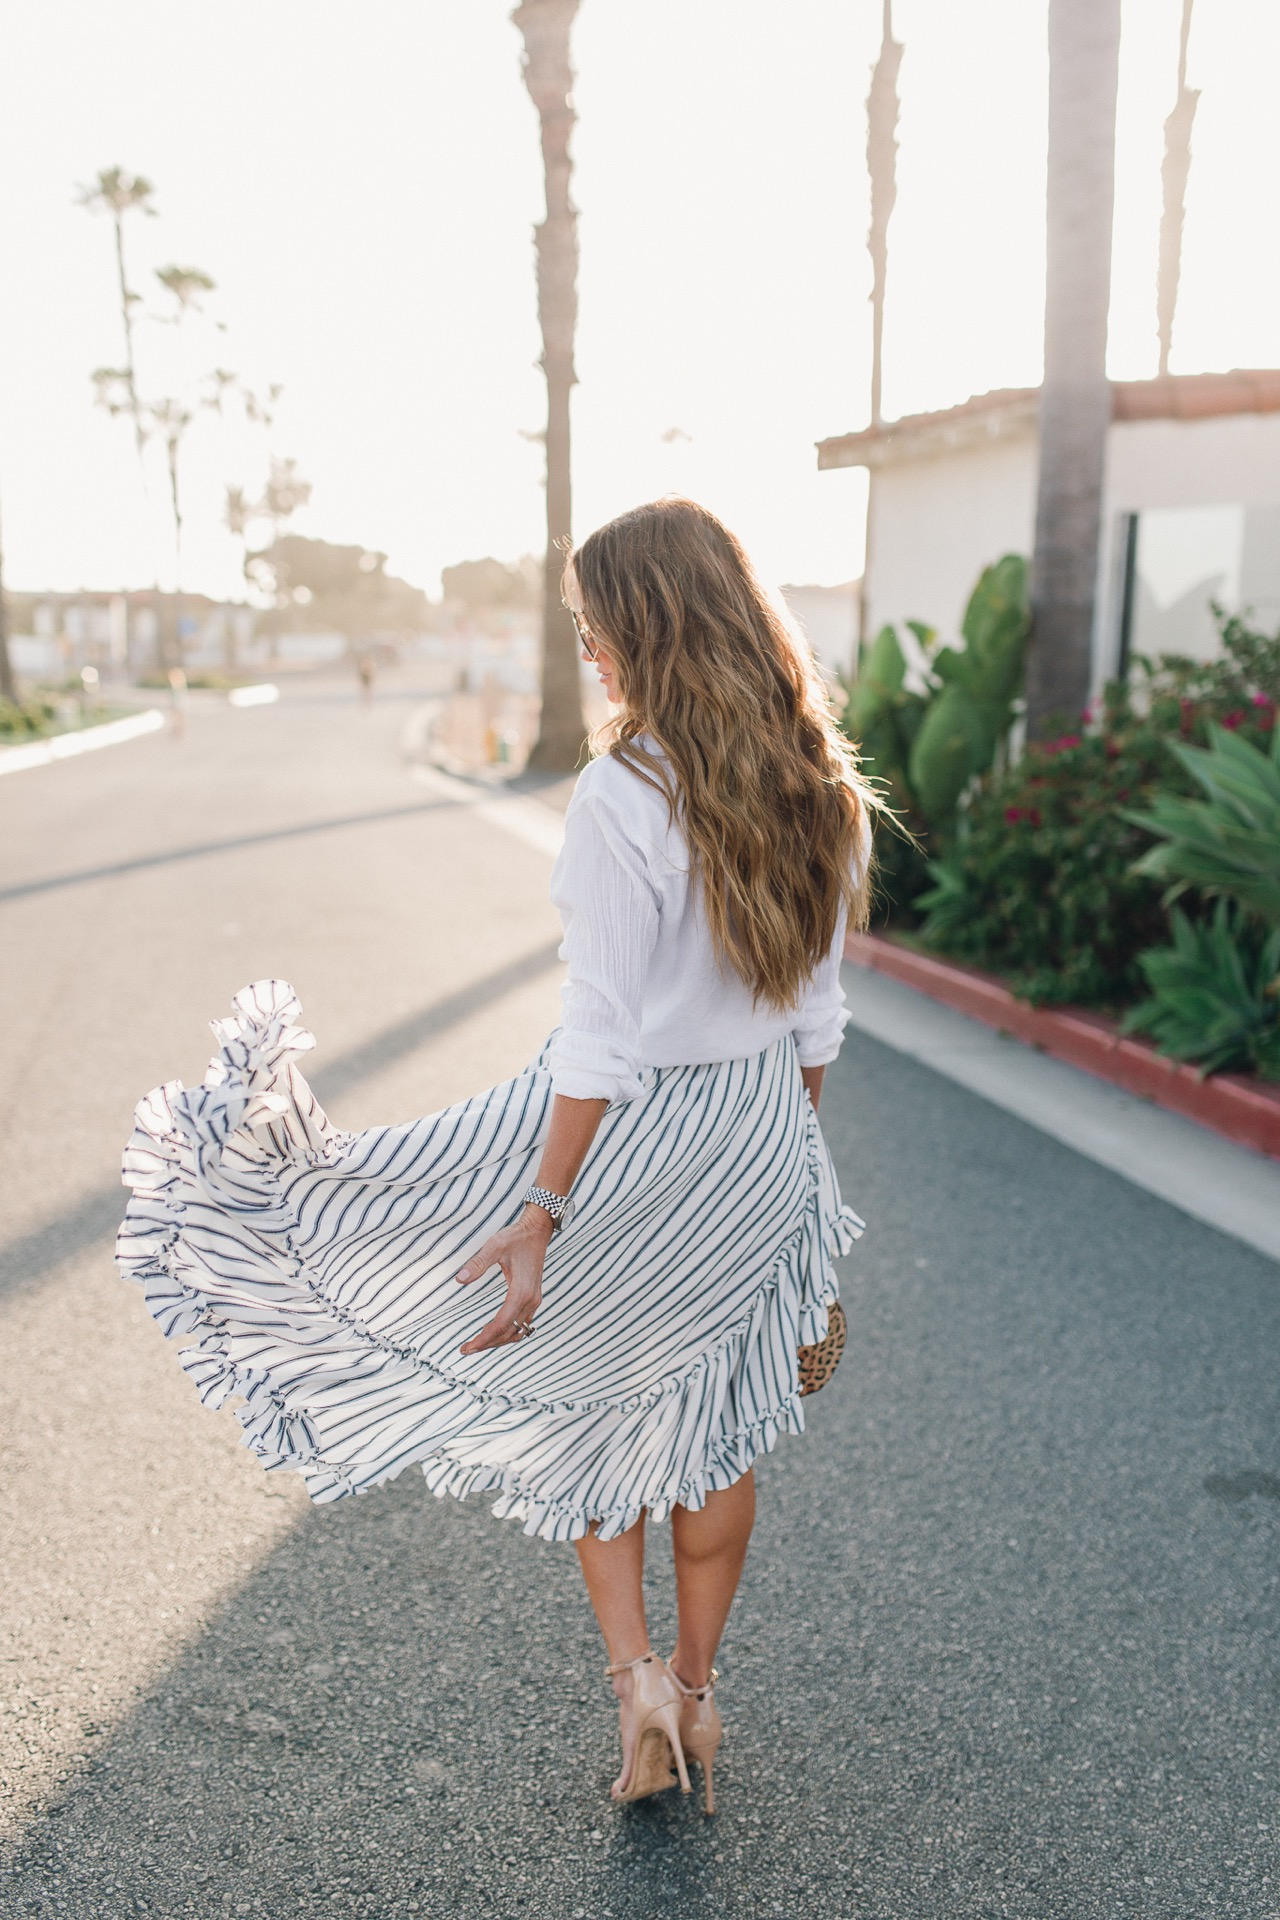 Summer Feeling with this cute Camelia Skirt by MISA Los Angeles